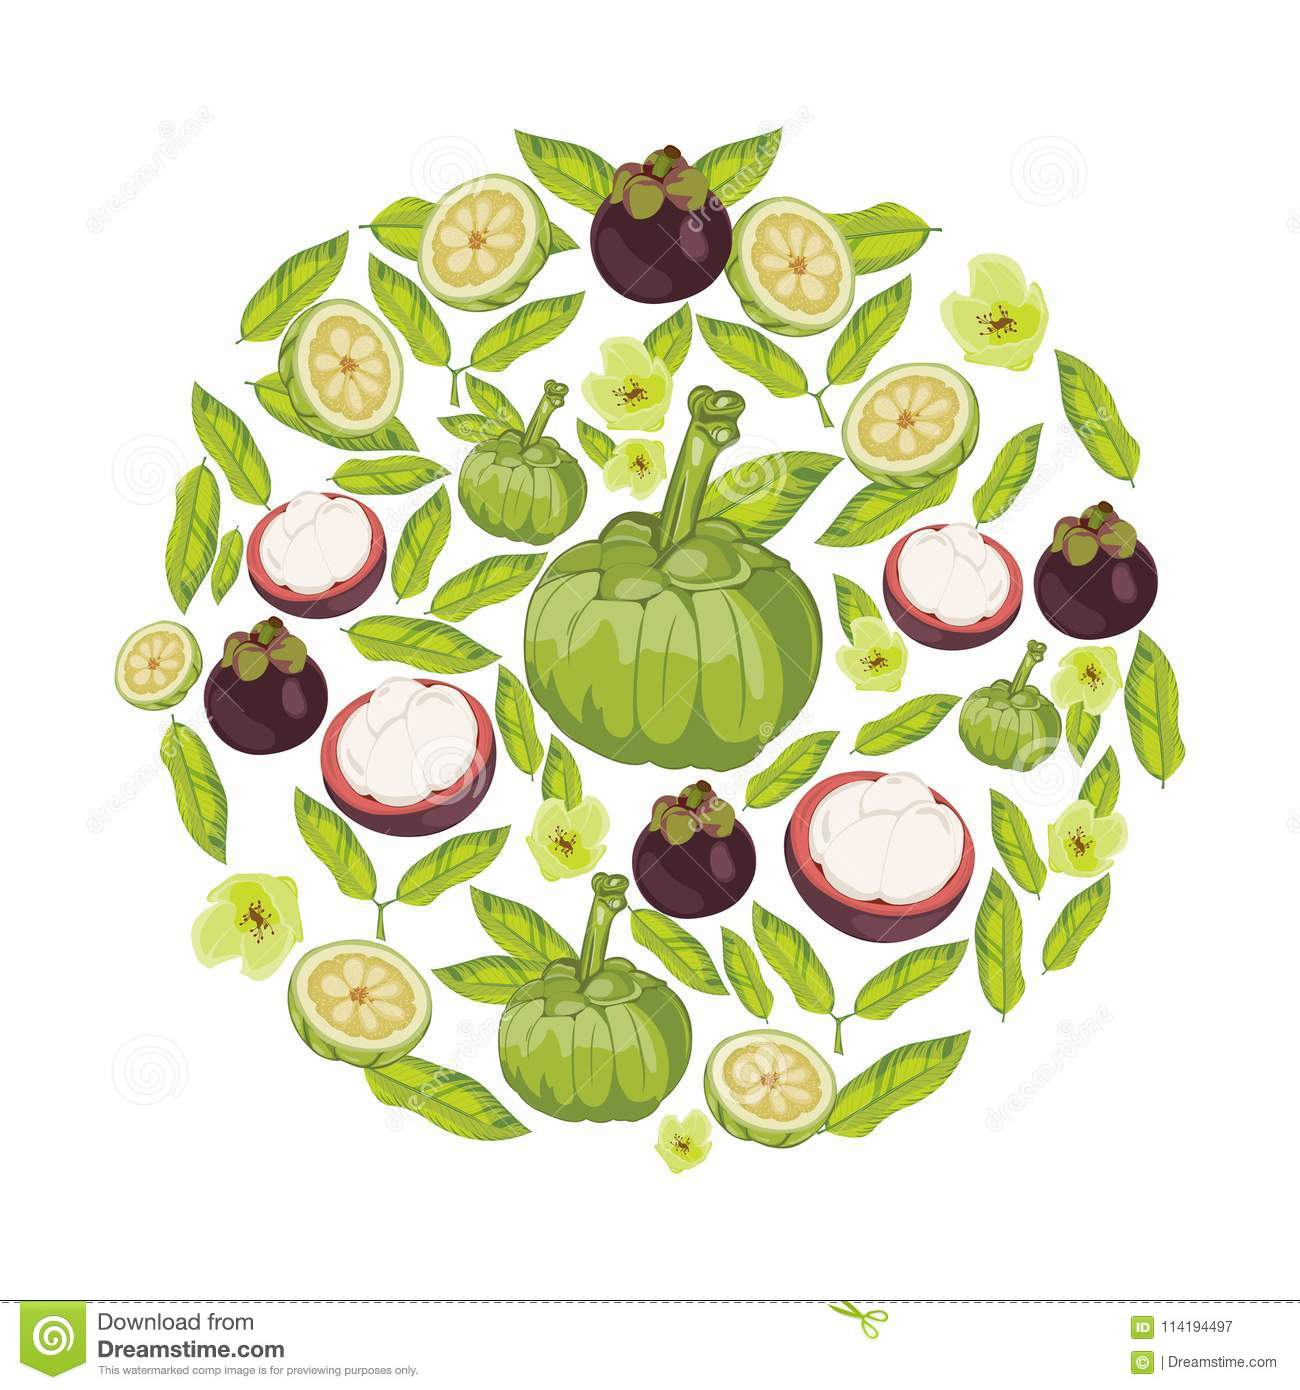 Garcinia Cambogia Fruit Vector Stock Vector Illustration Of Food